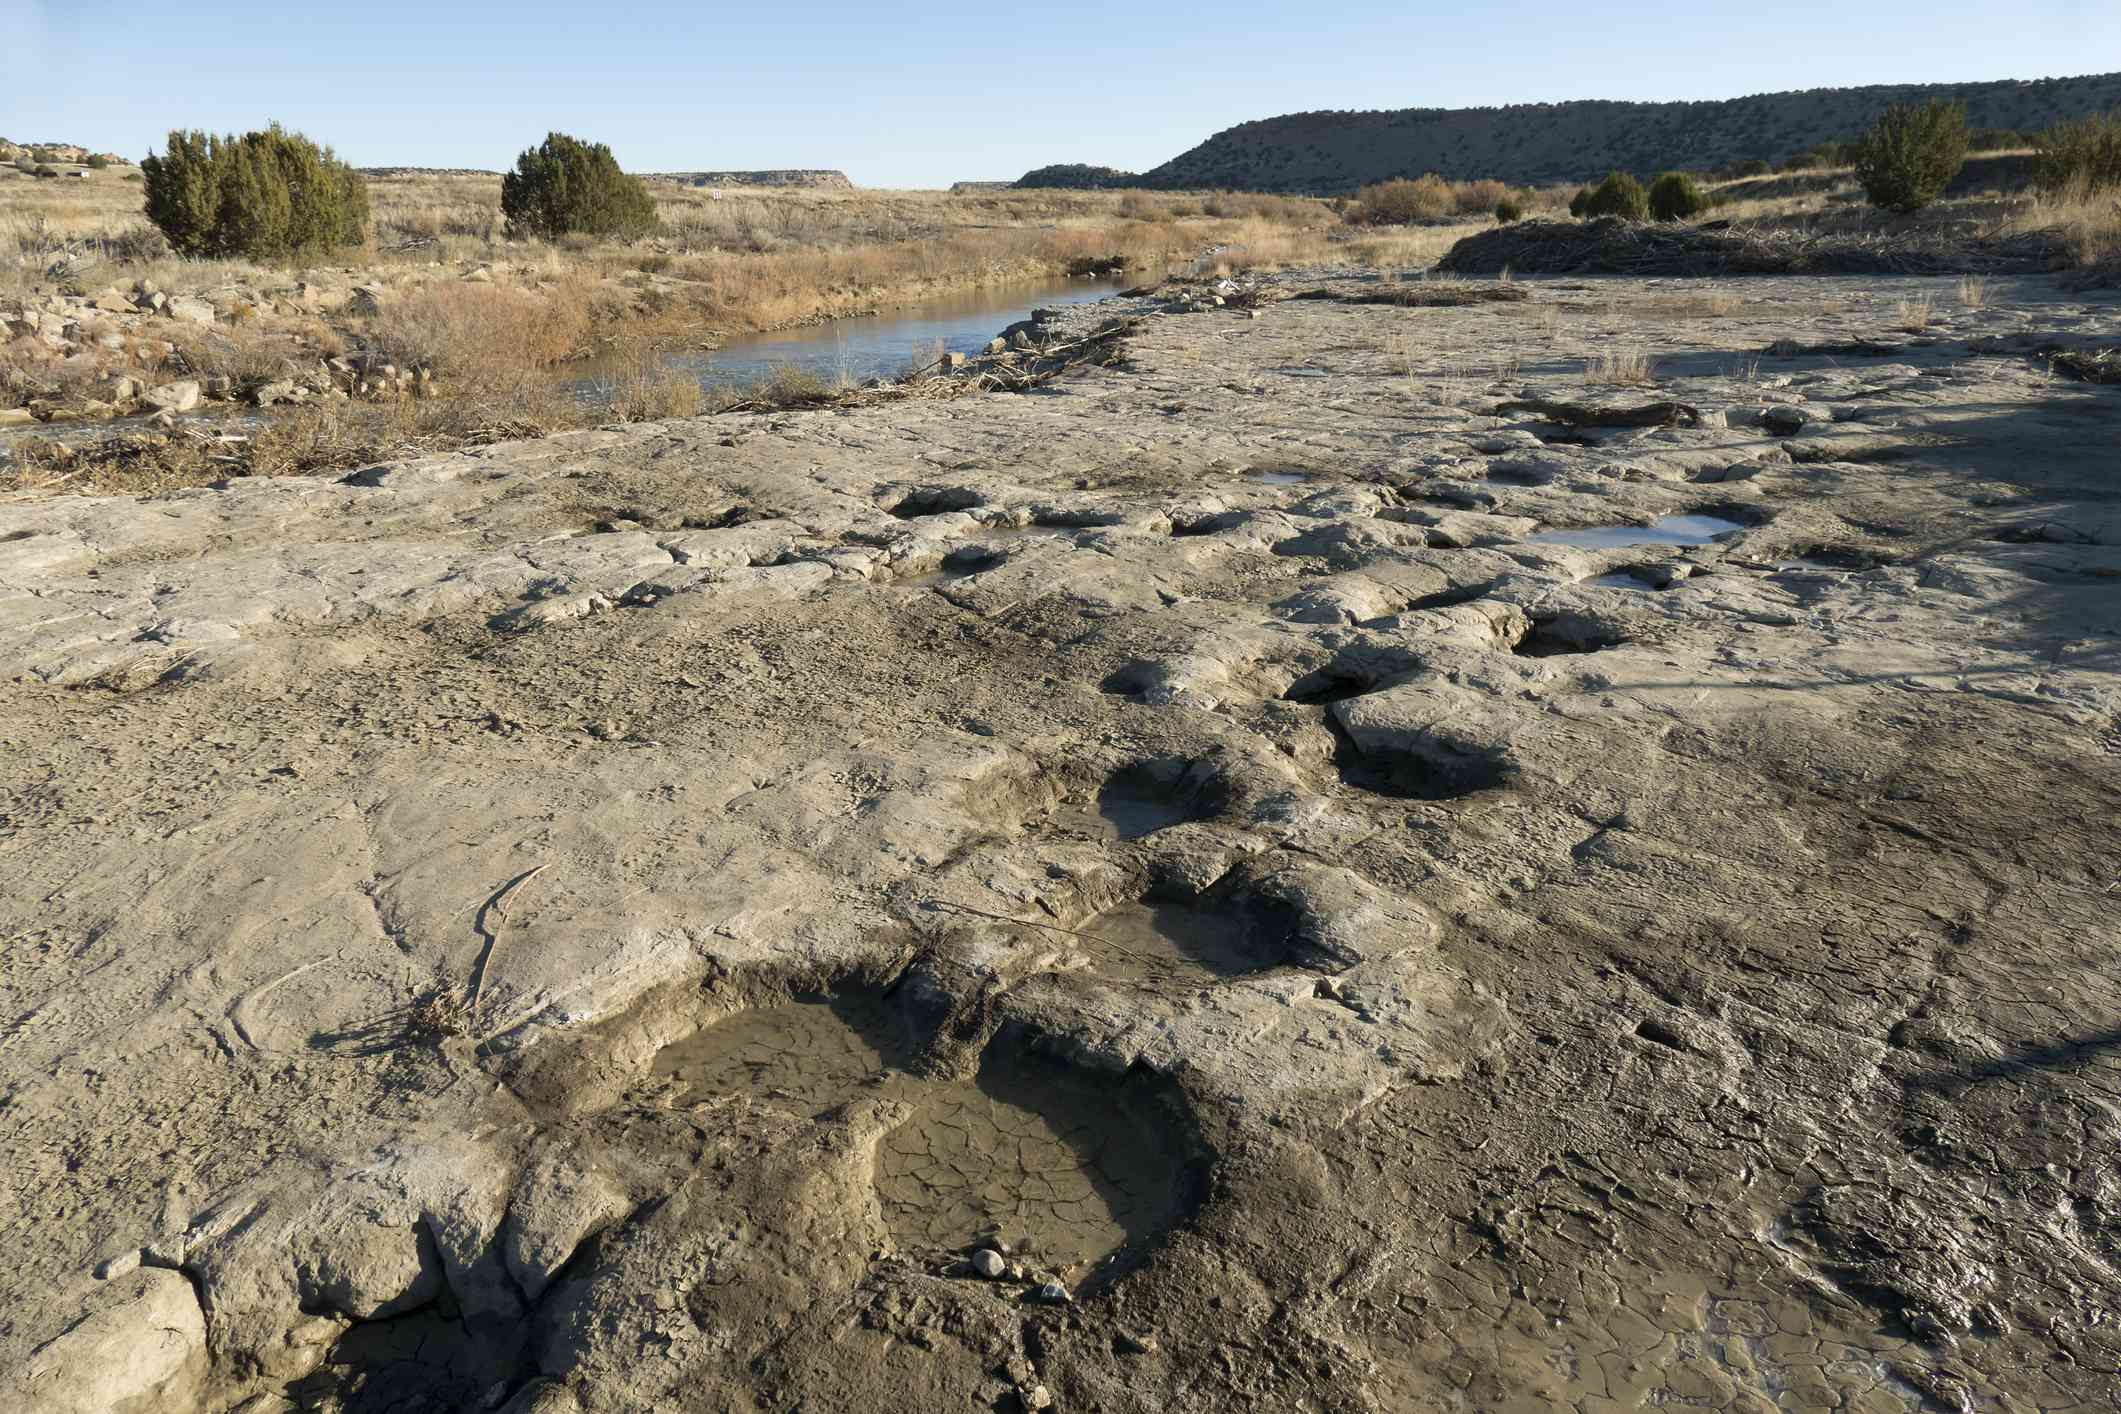 Several sets of large dinosaur tracks on the rocky ground near a river